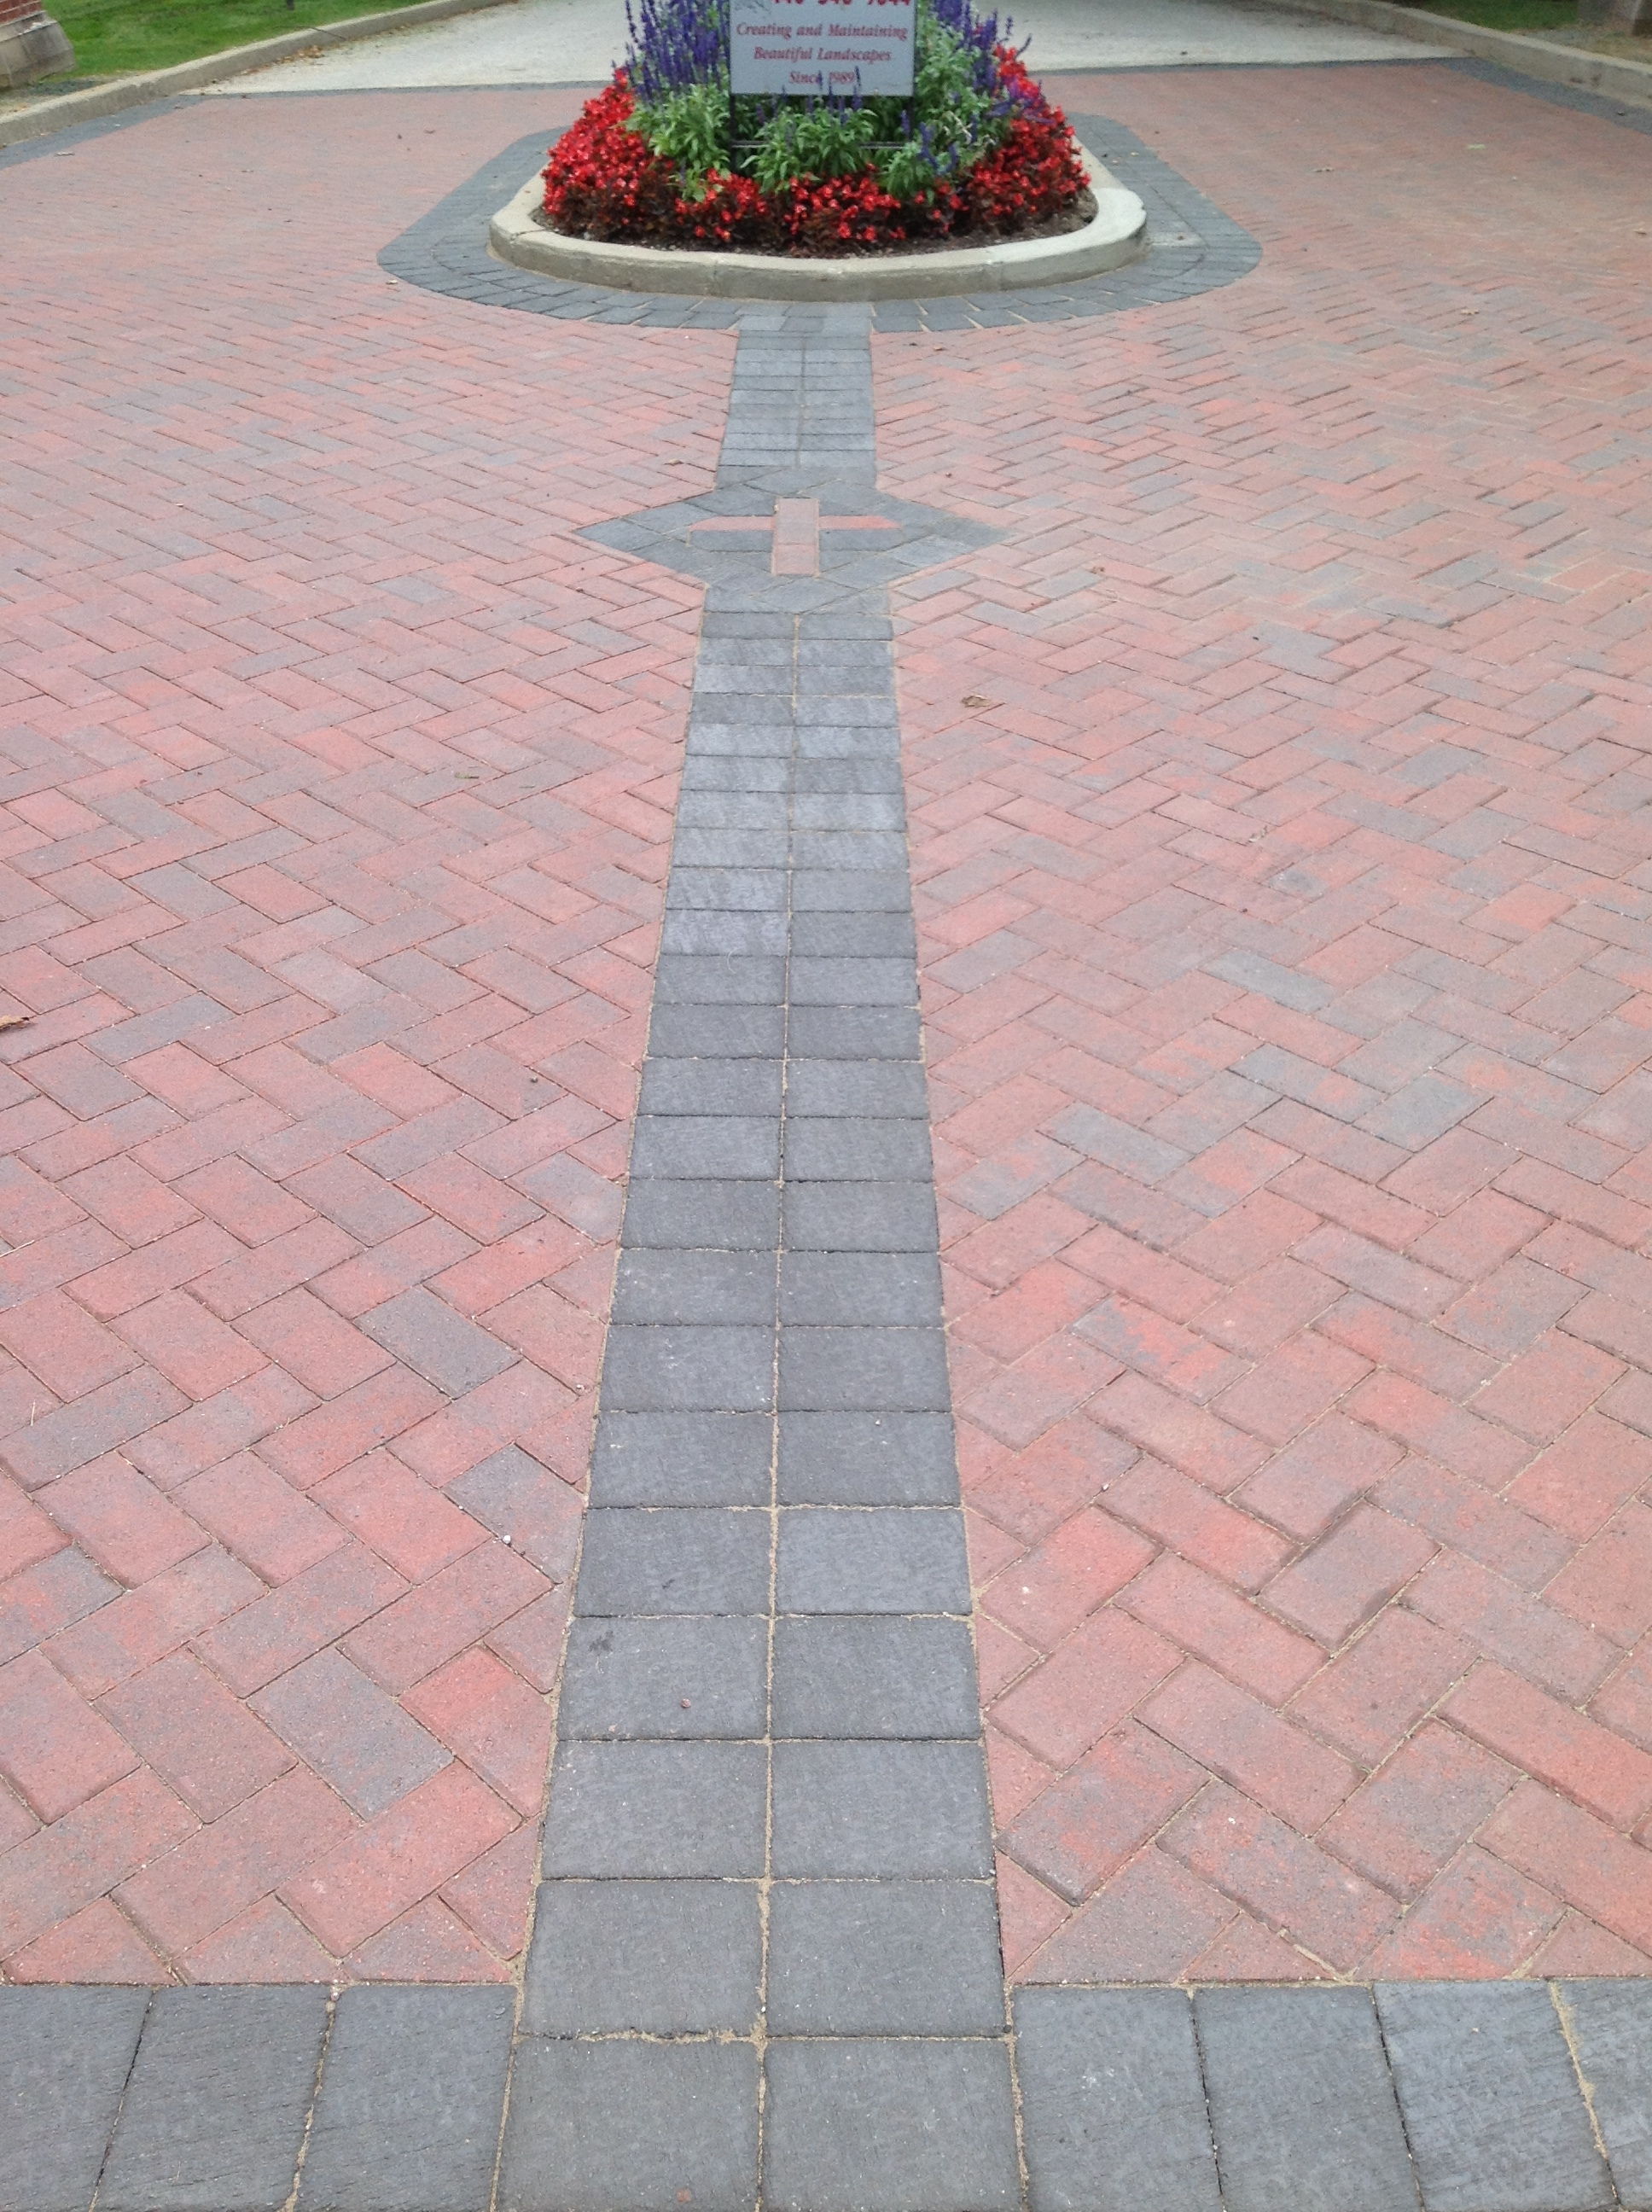 Patio pavers and drvieway landscape design in Novelty, OH